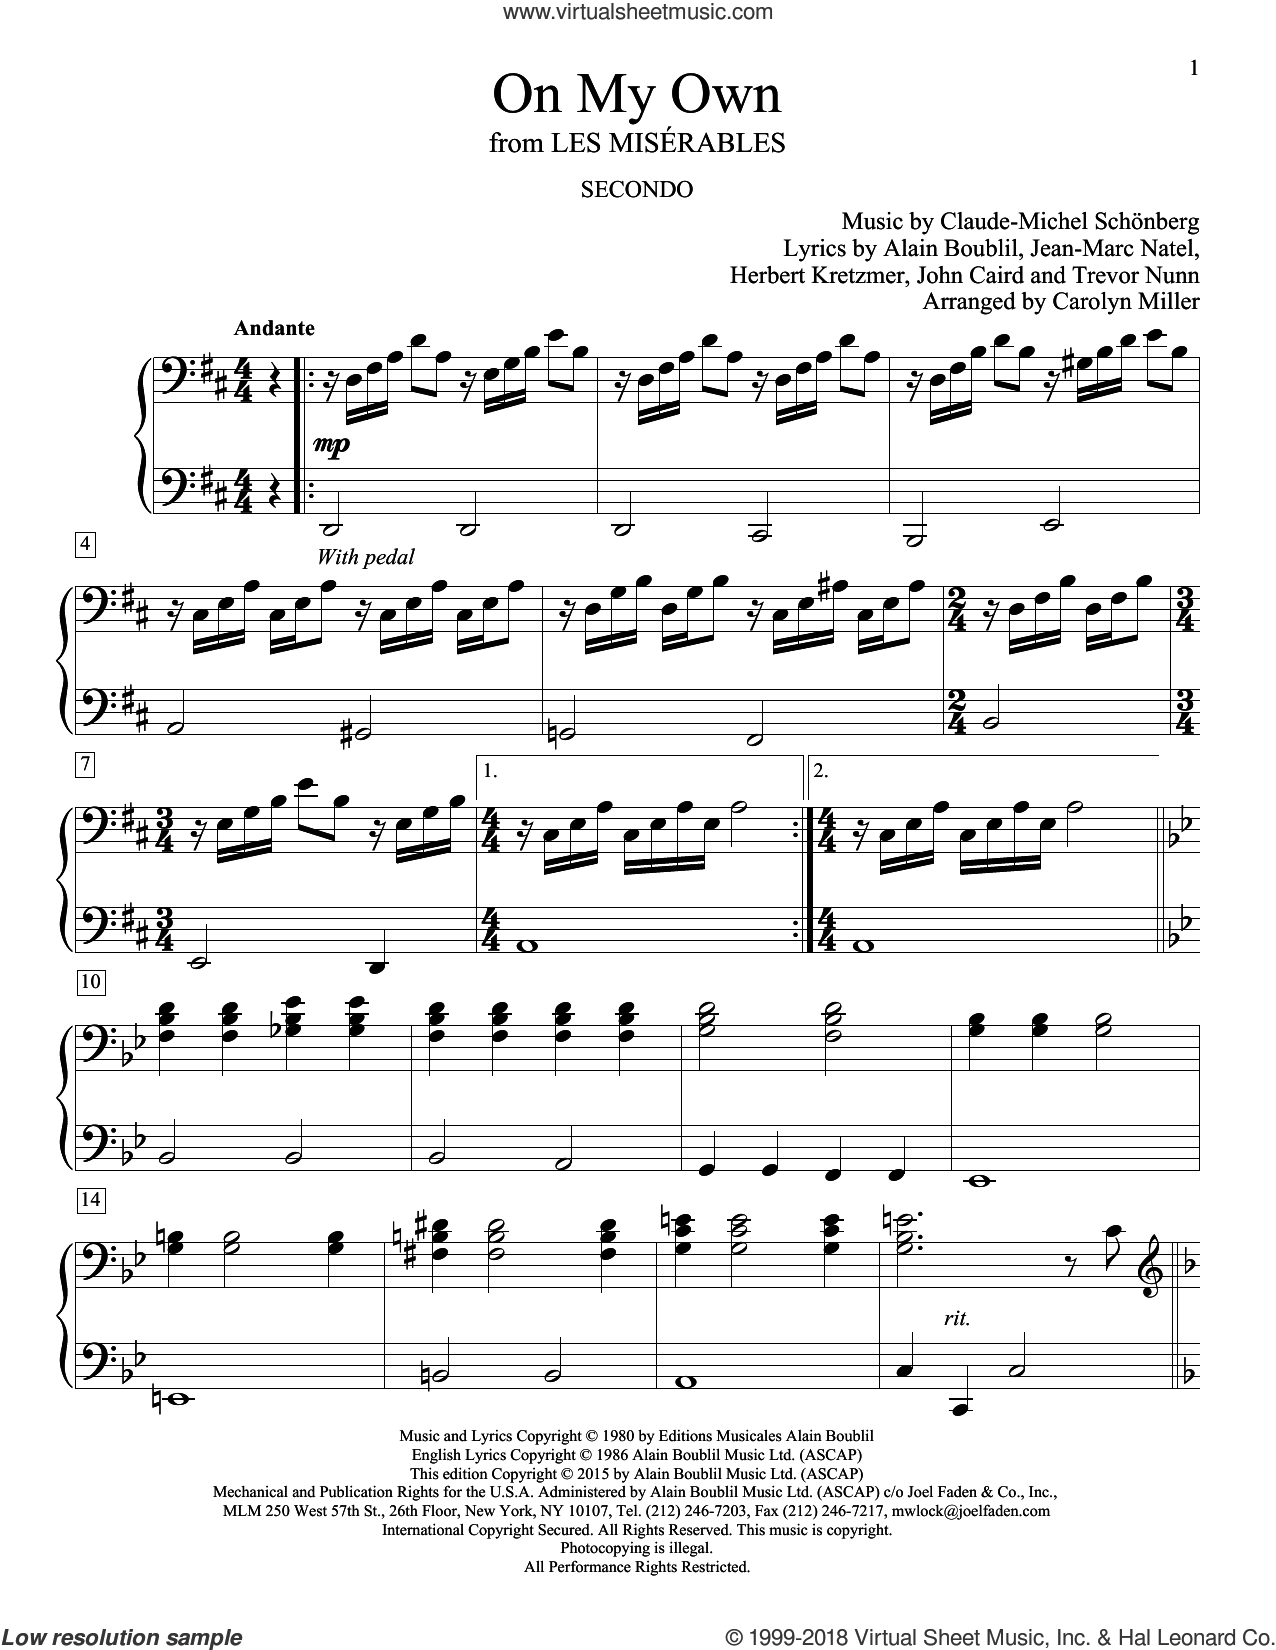 On My Own sheet music for piano four hands by Alain Boublil, Carolyn Miller and Claude-Michel Schonberg and Claude-Michel Schonberg, intermediate skill level